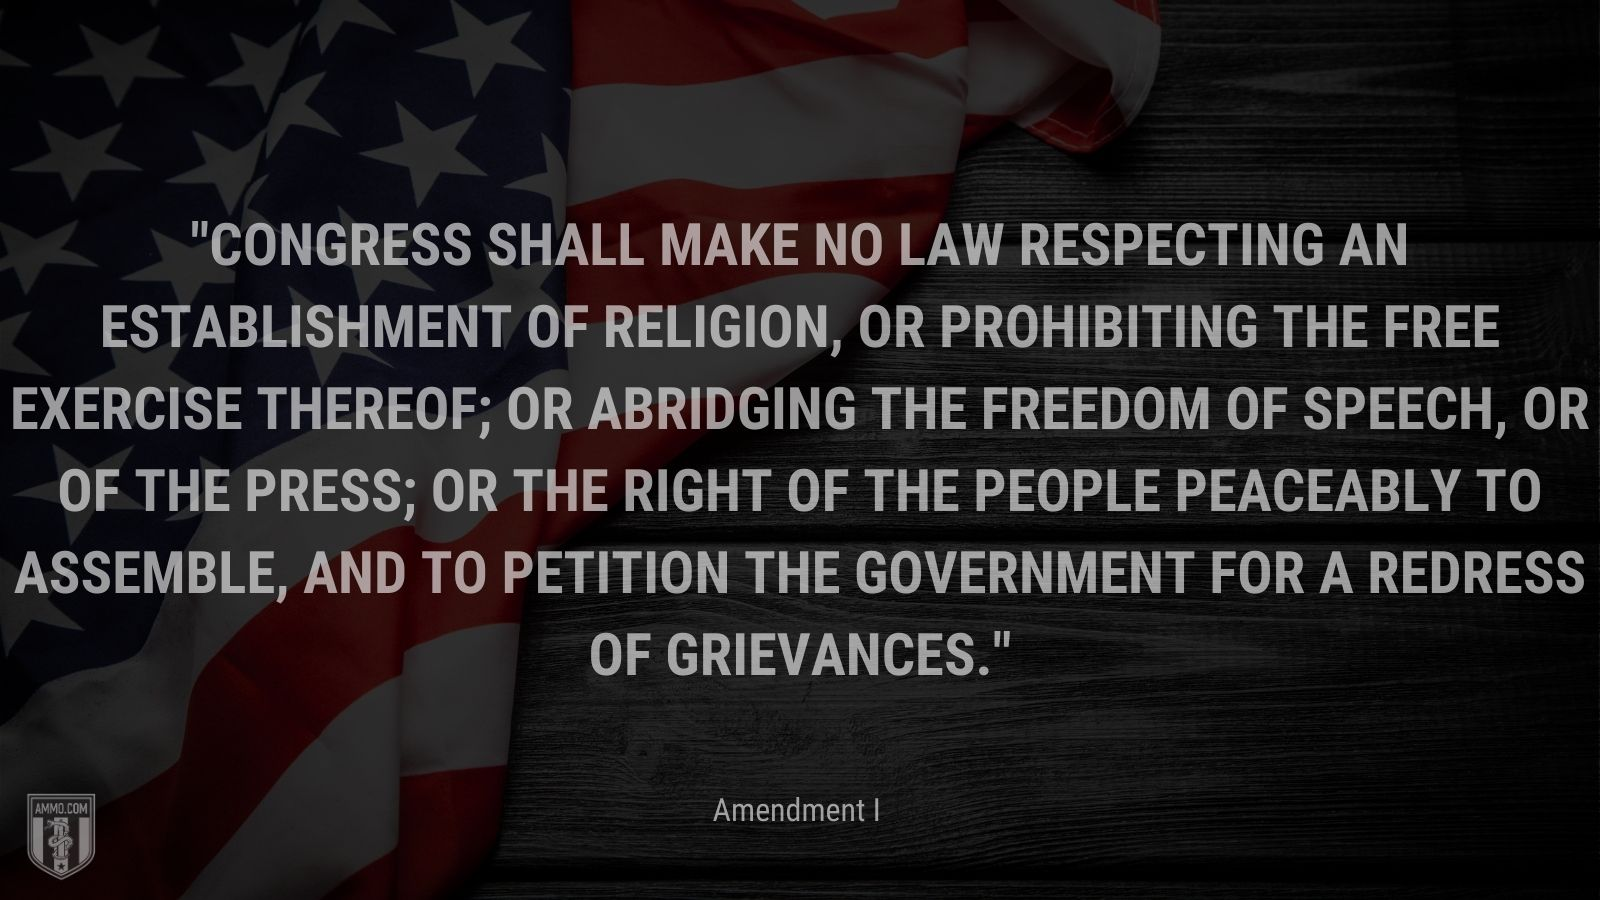 """""""Congress shall make no law respecting an establishment of religion, or prohibiting the free exercise thereof; or abridging the freedom of speech, or of the press; or the right of the people peaceably to assemble, and to petition the Government for a redress of grievances."""" - Amendment I"""